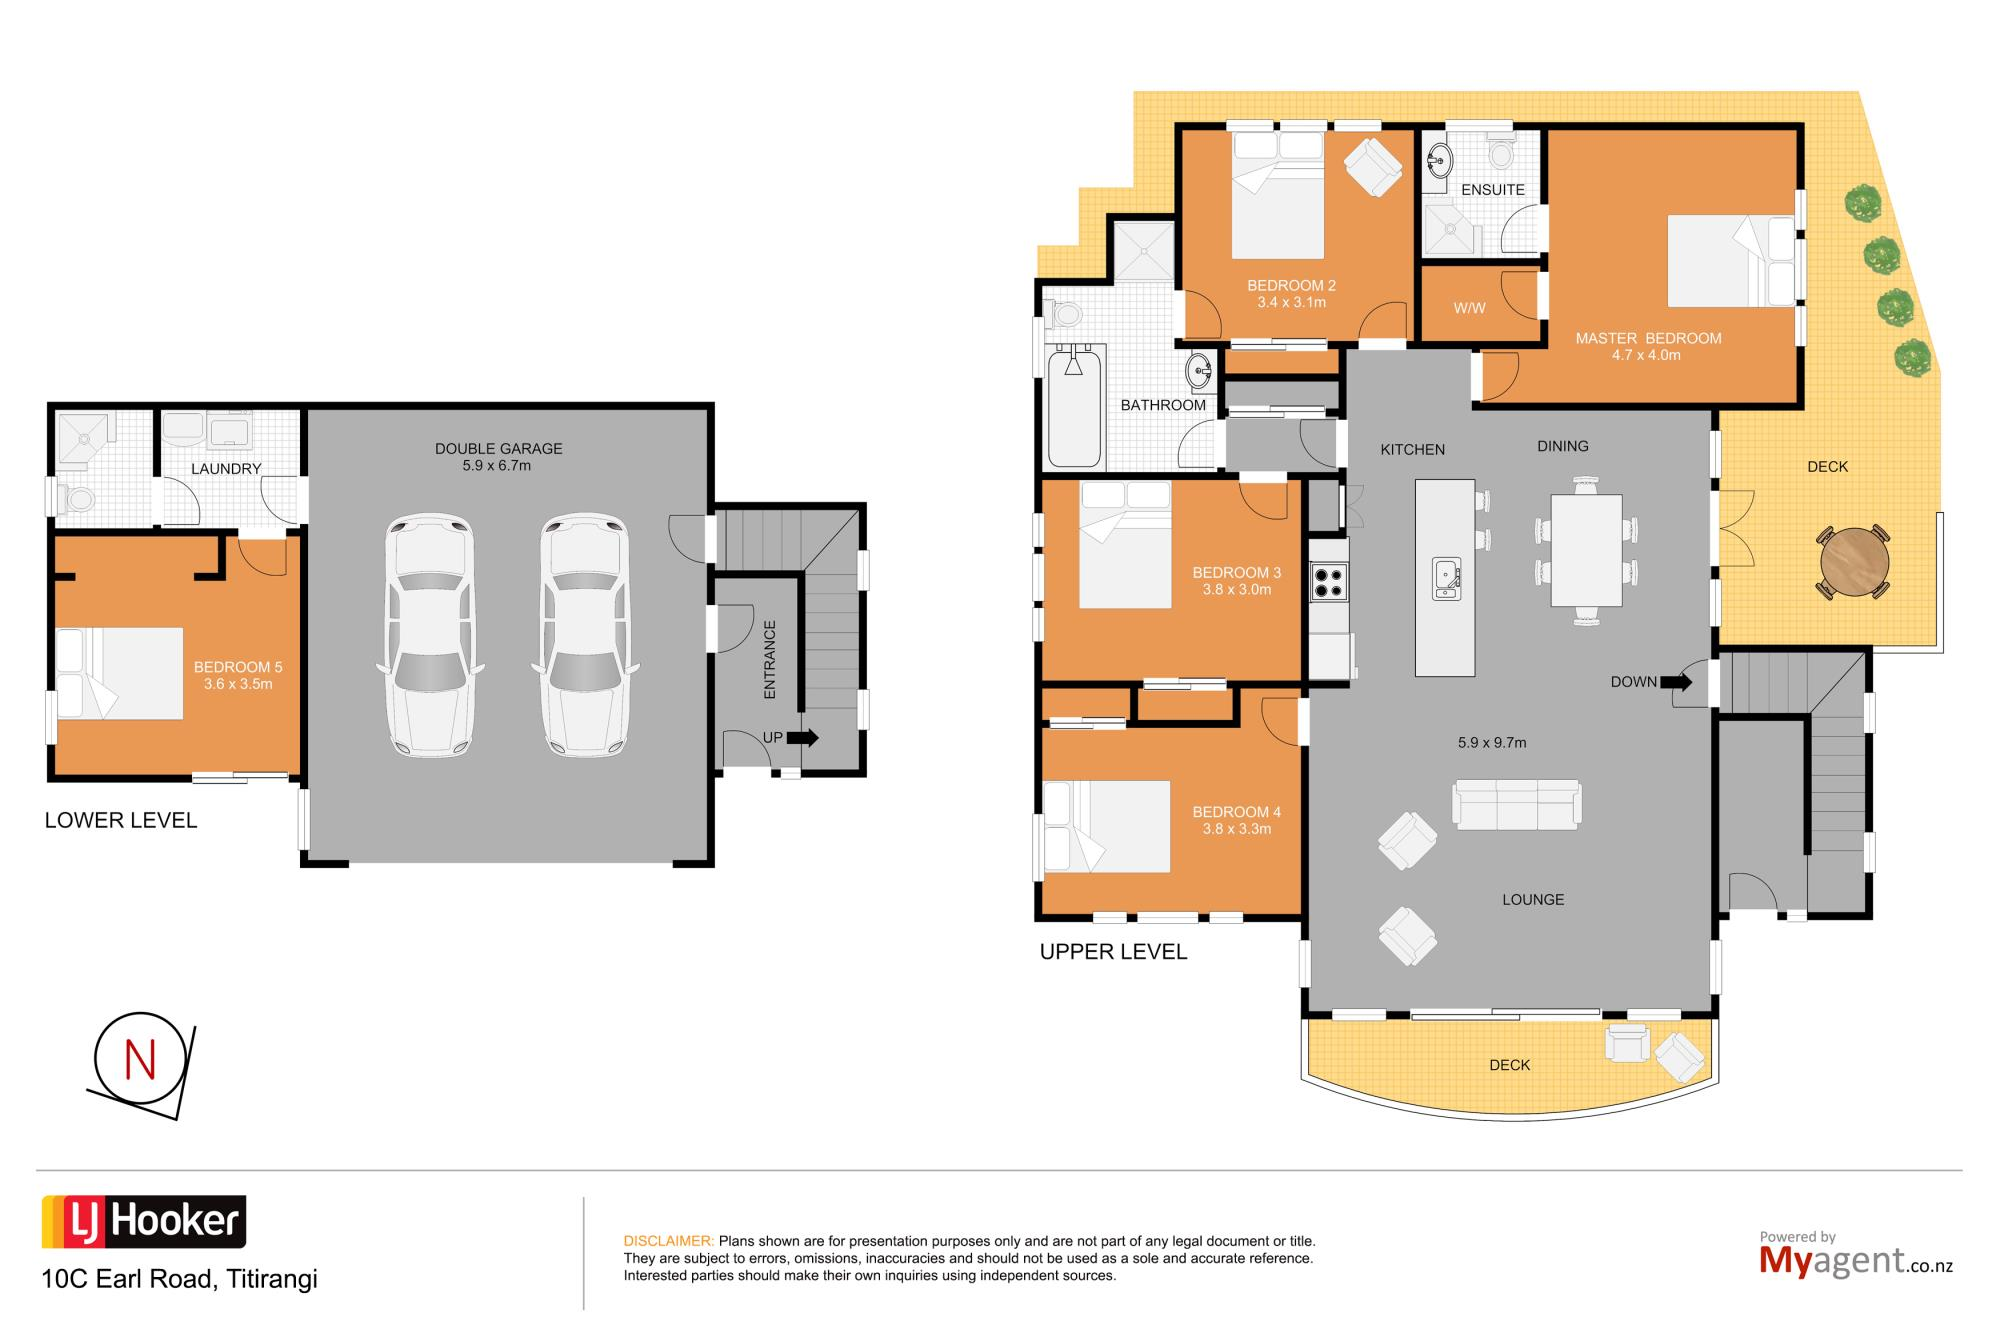 10C Earl Road Titirangiproperty floorplan image